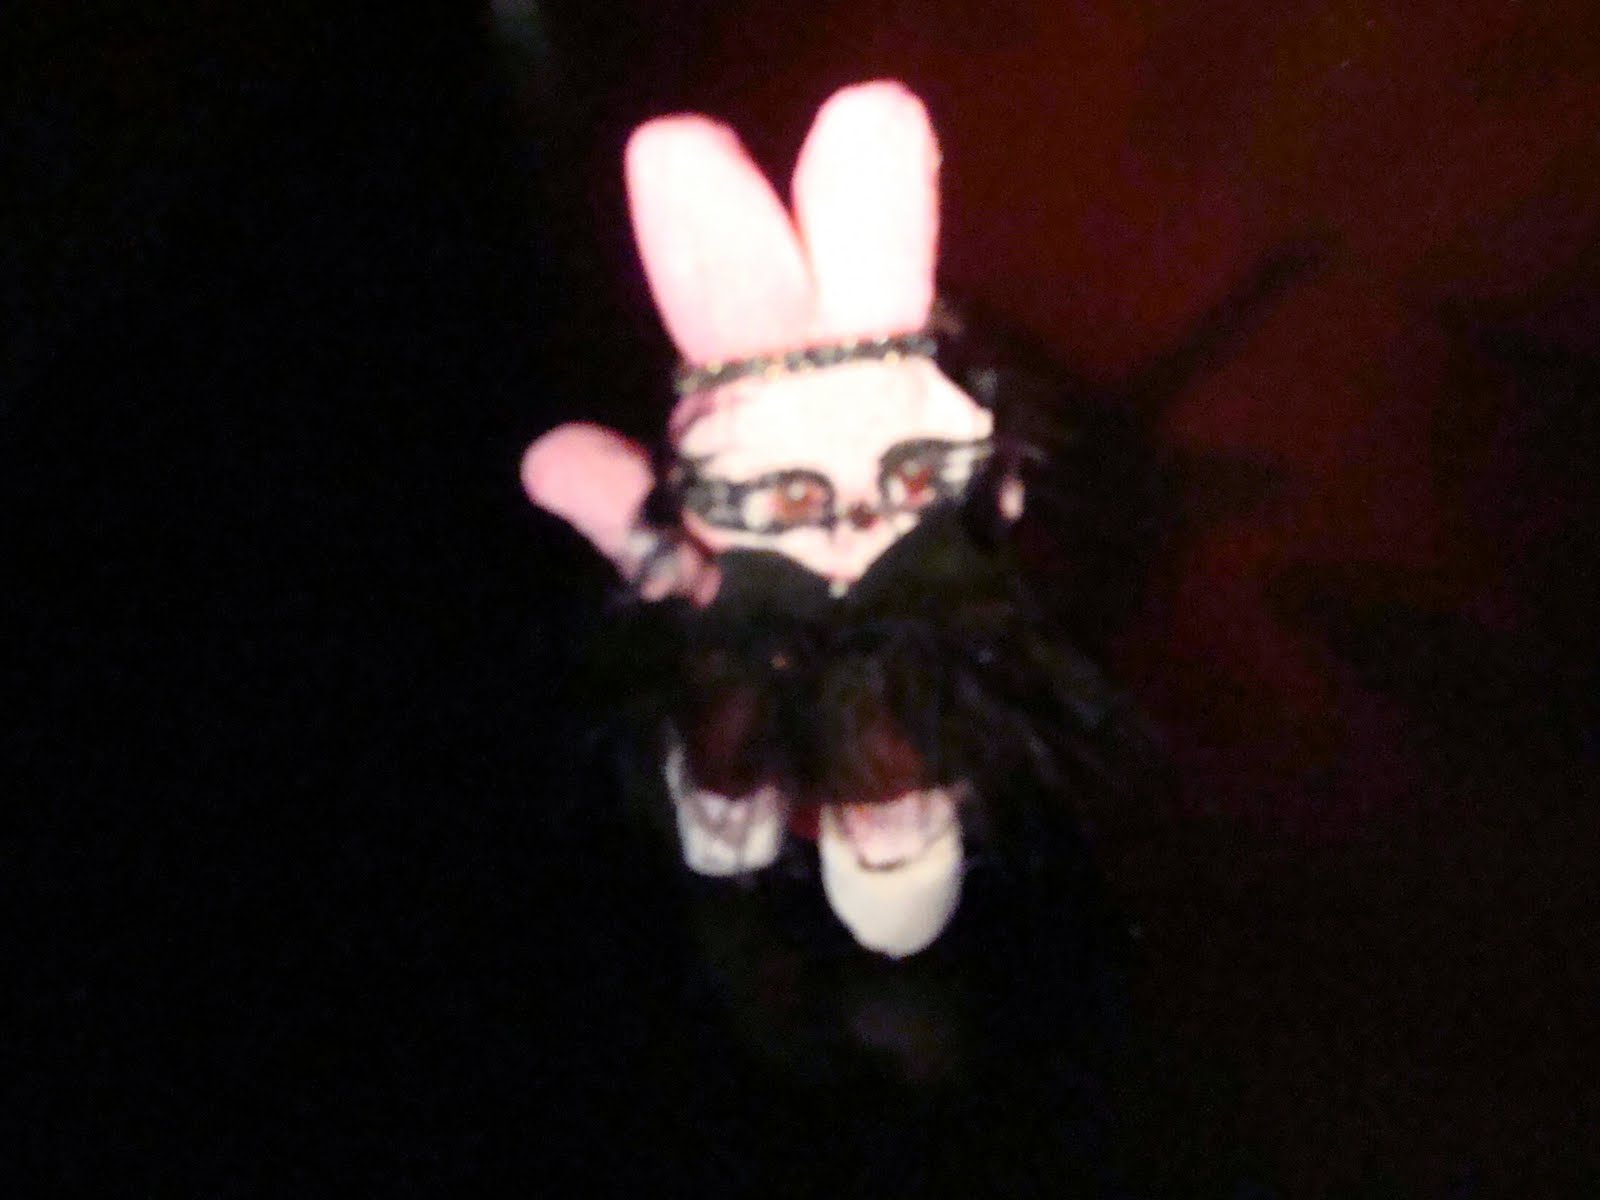 Black Peep diorama detail